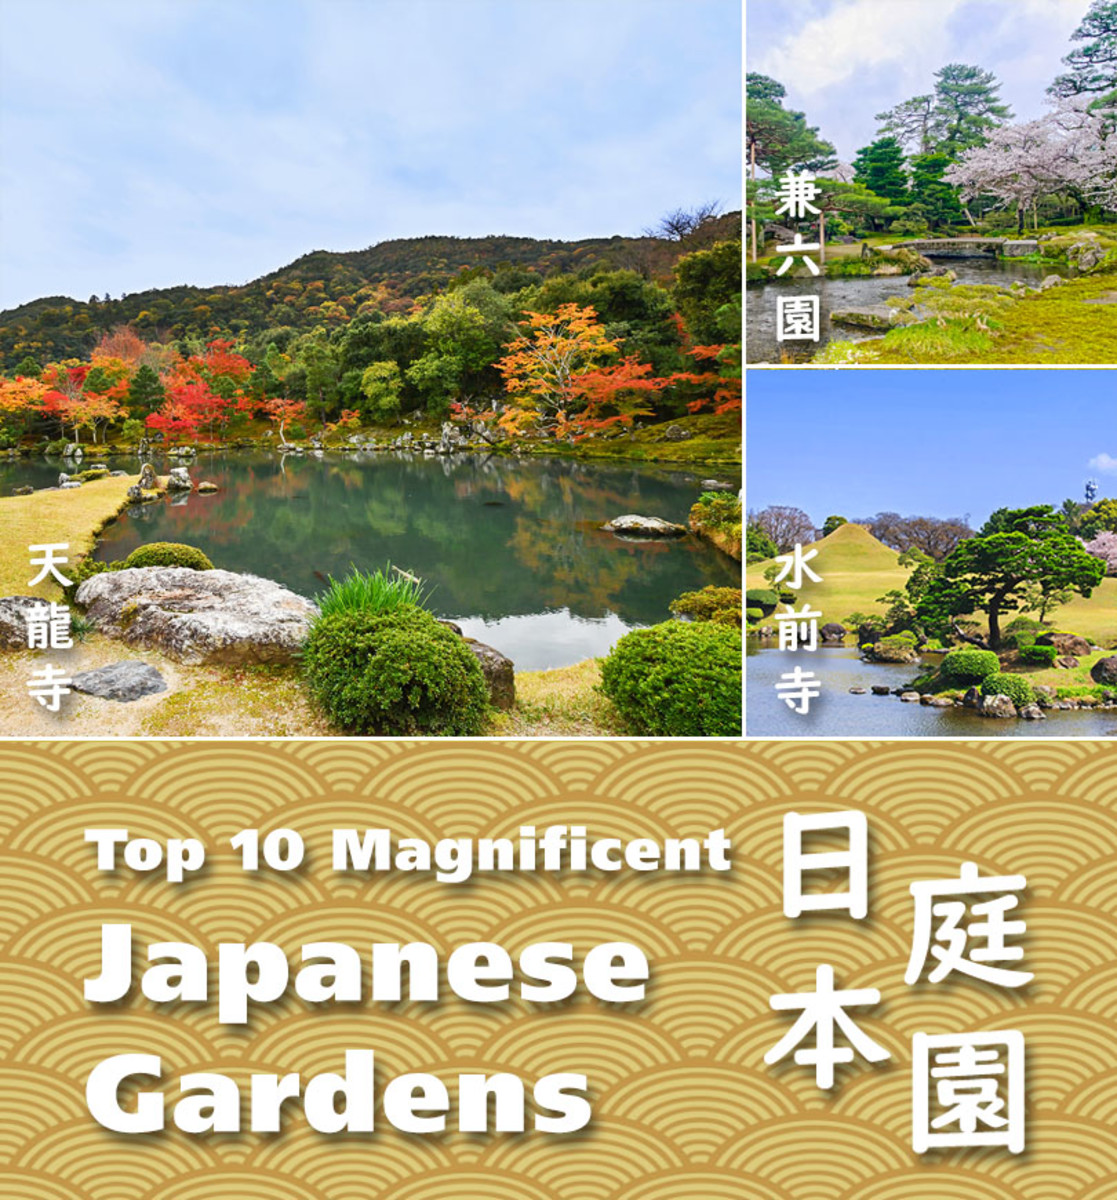 Top 10 Magnificent Japanese Gardens